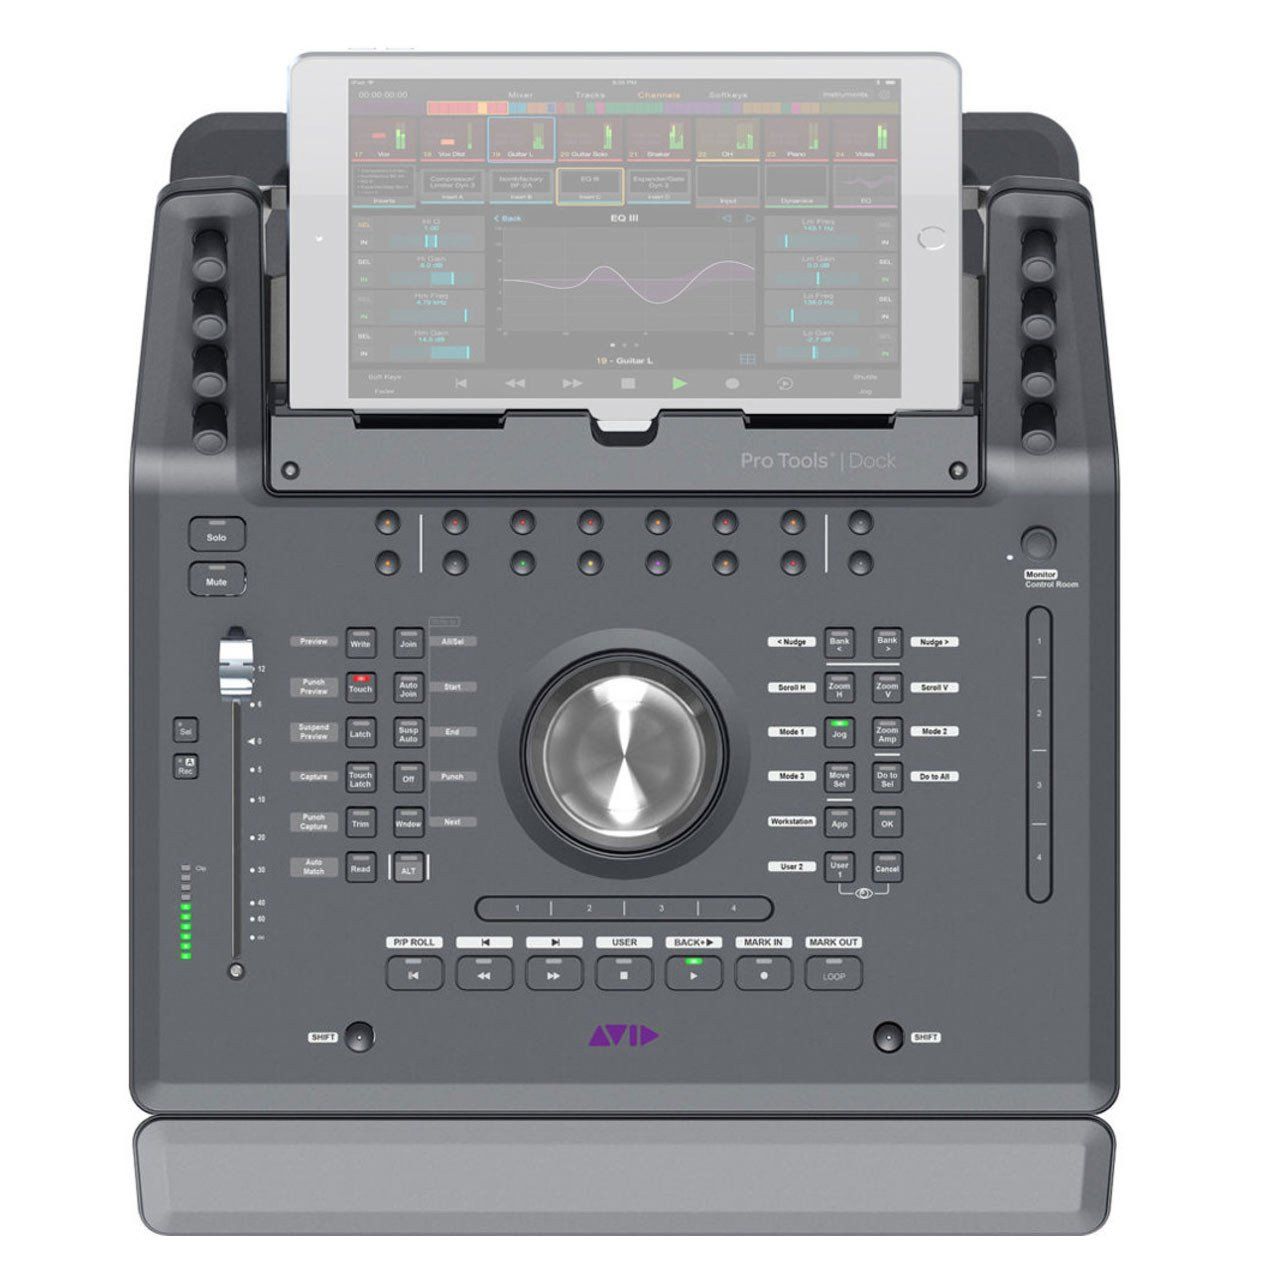 Pro Tools Control Surfaces - AVID Pro Tools Dock Media Controller